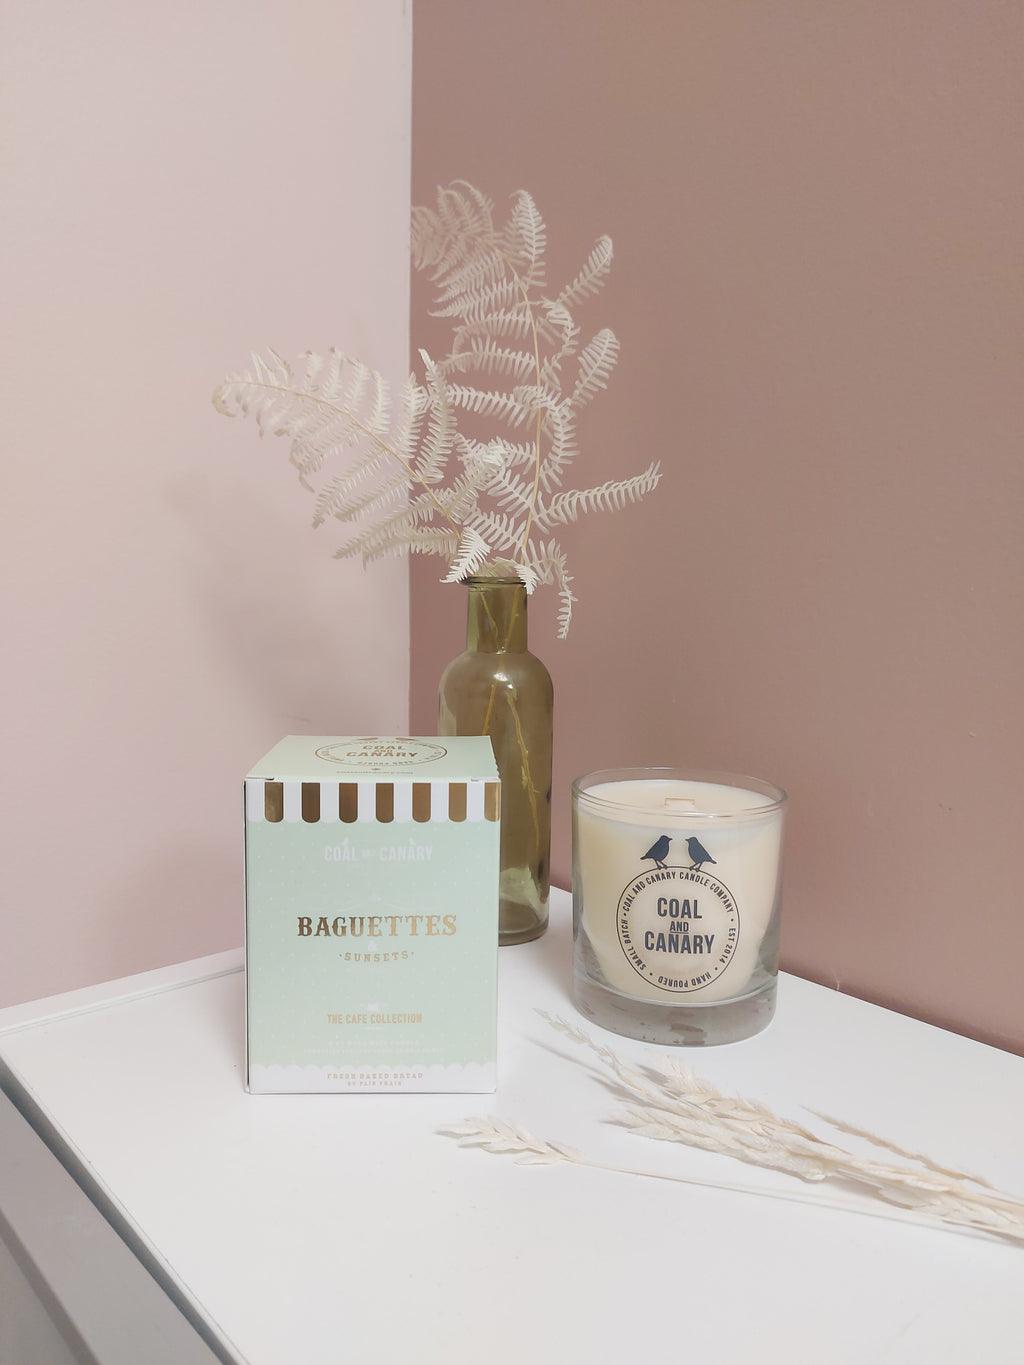 Coal & Canary Candle Co. Baguettes & Sunsets